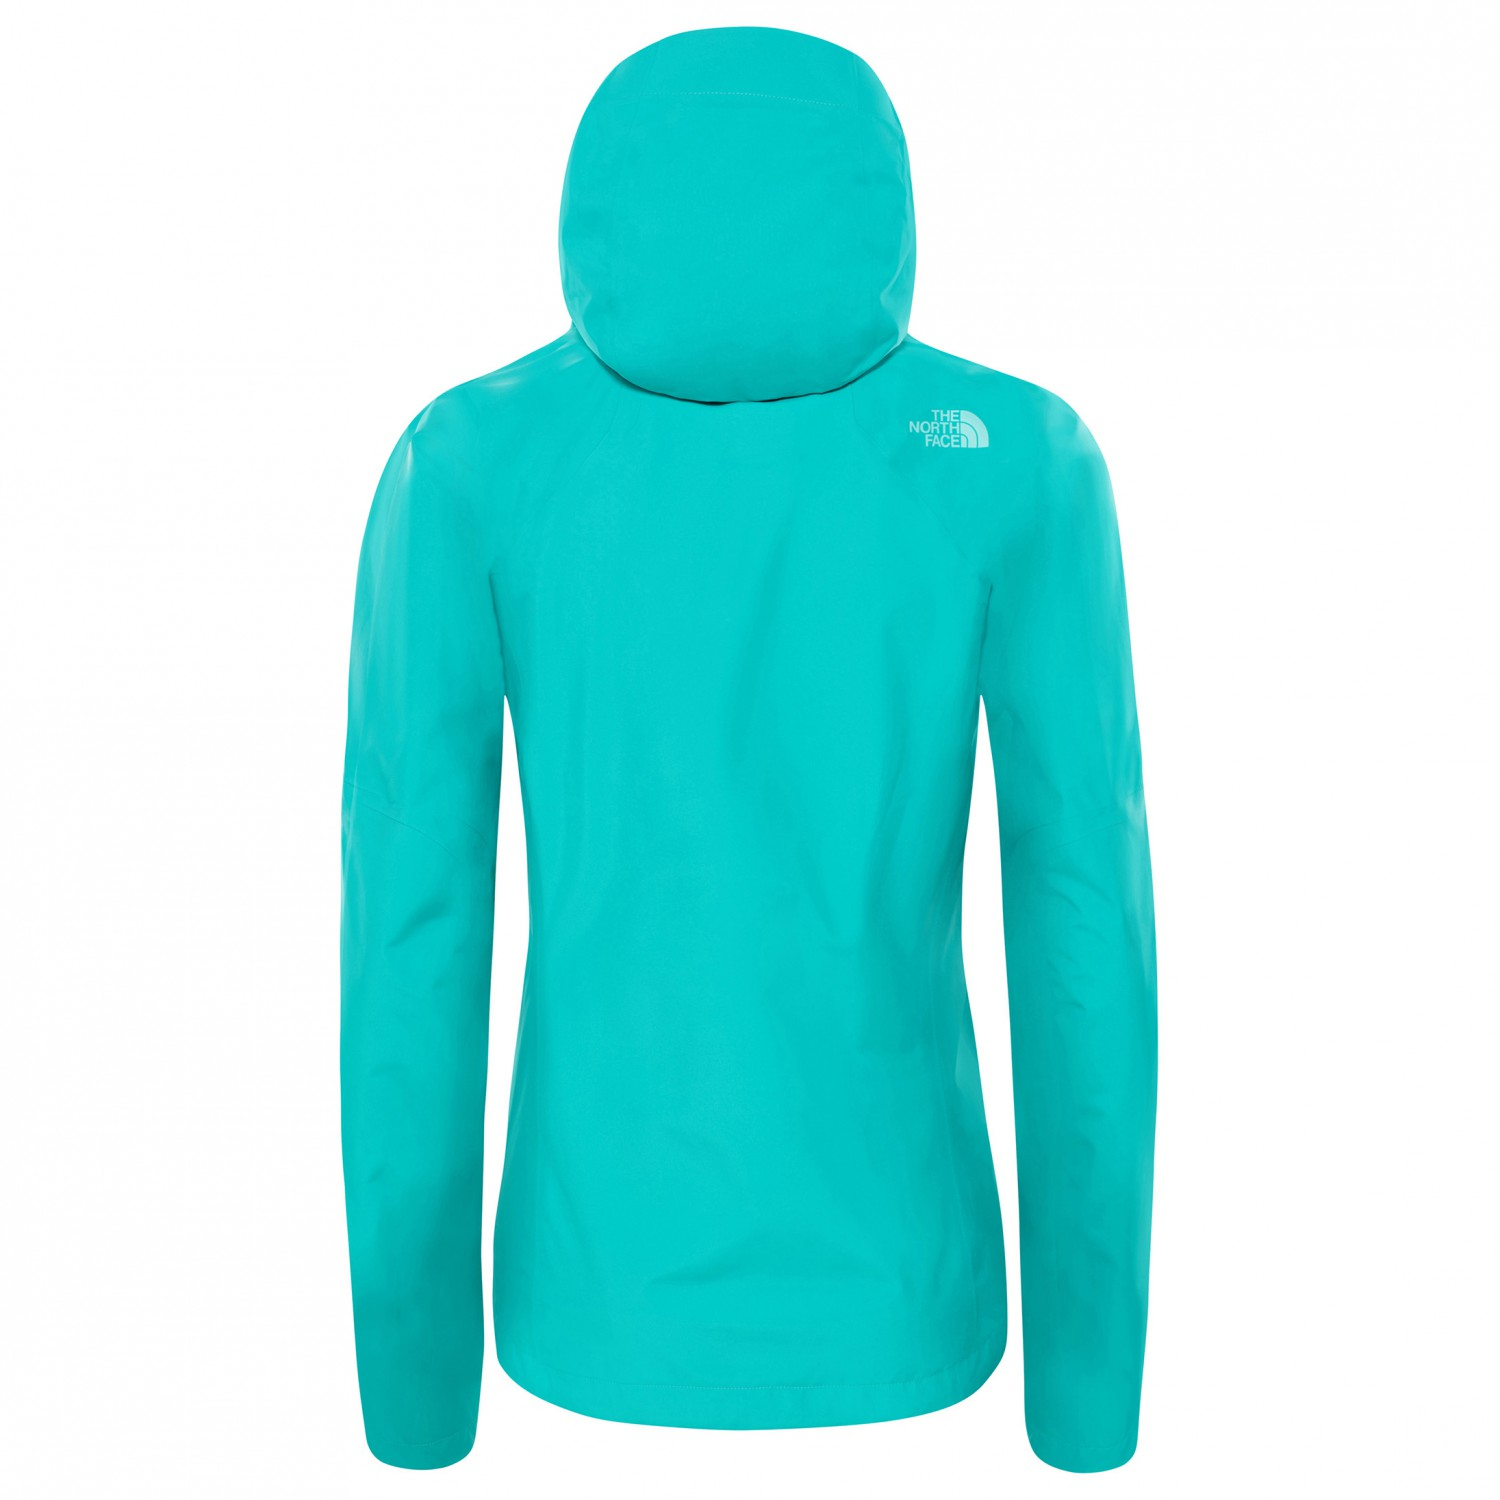 e1af4b28d29 ... The North Face - Women s Dryzzle Jacket - Waterproof jacket ...